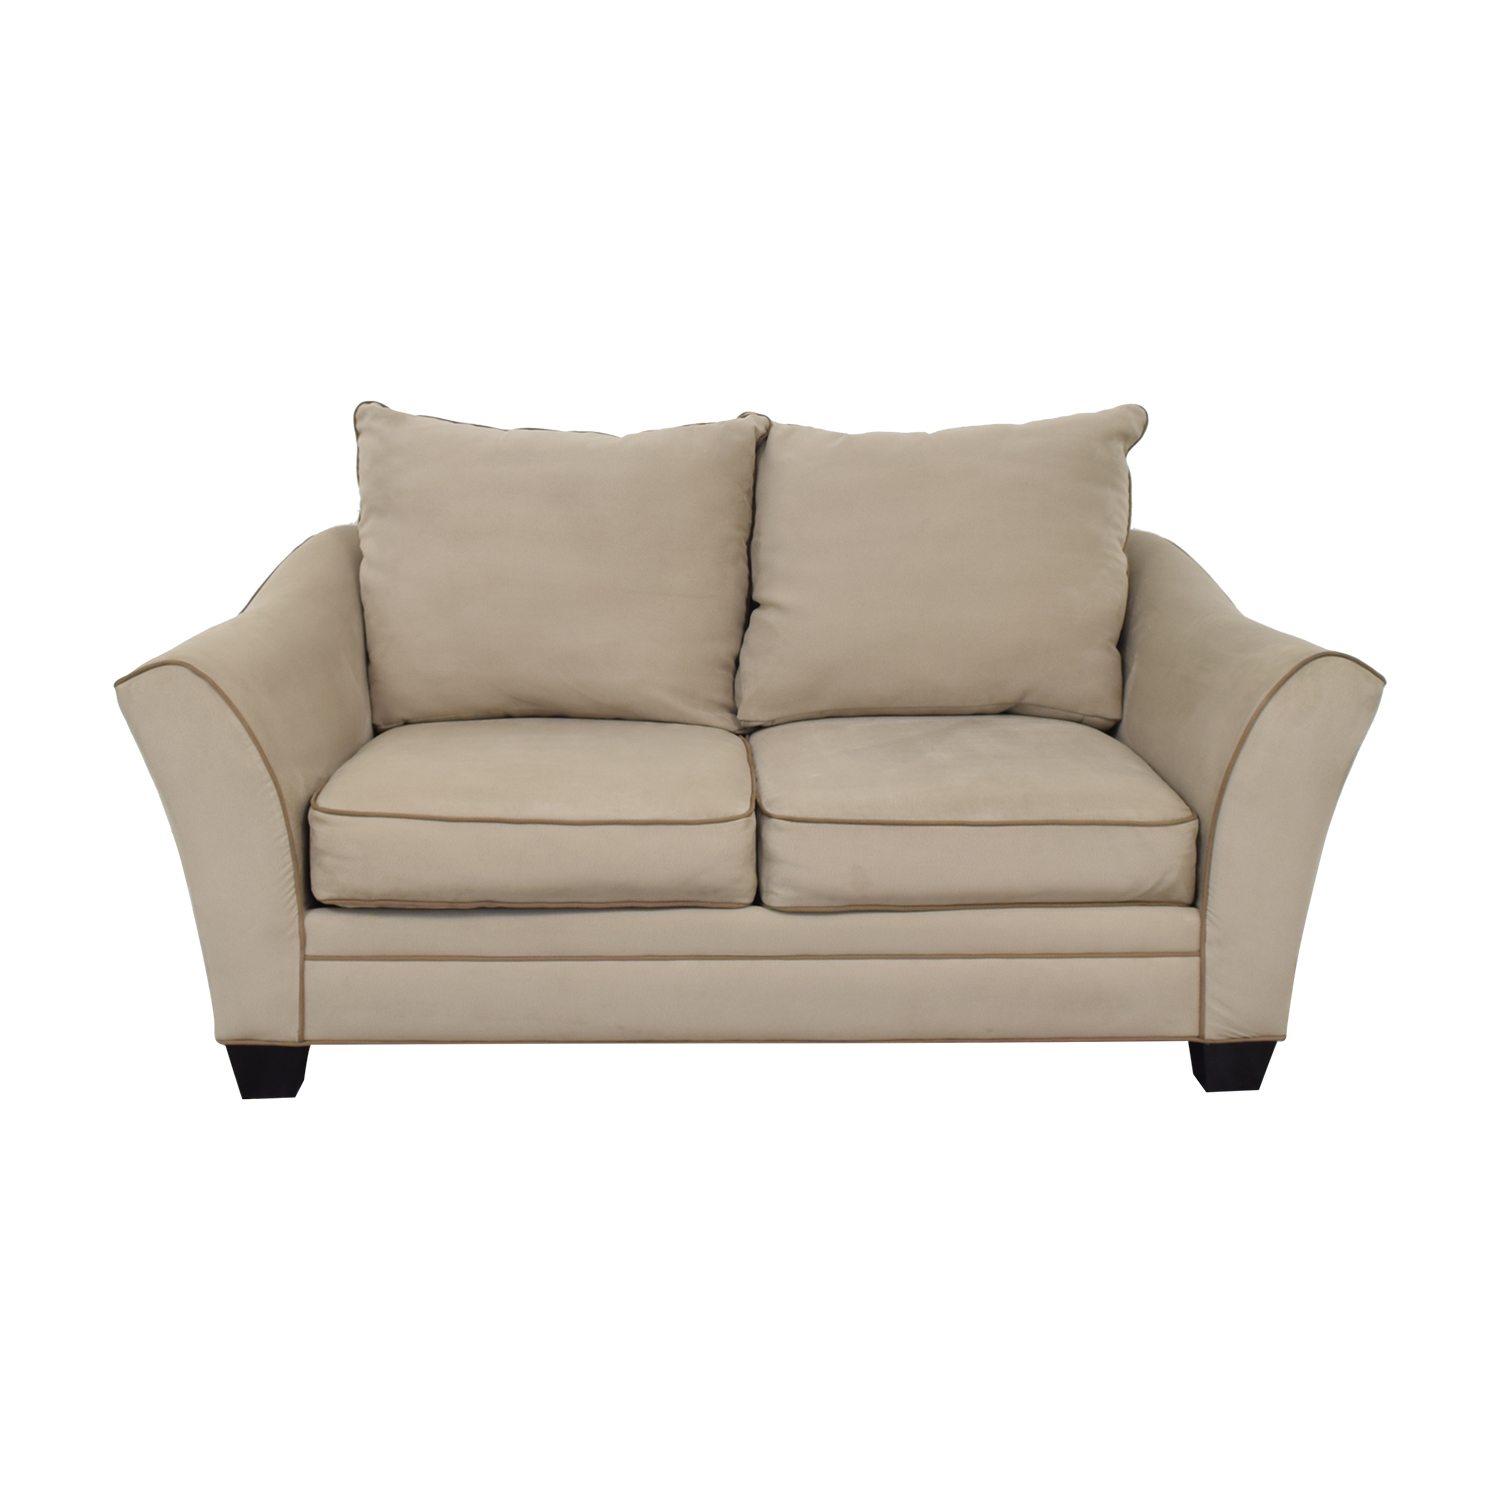 Raymour & Flanigan Foresthill Loveseat sale